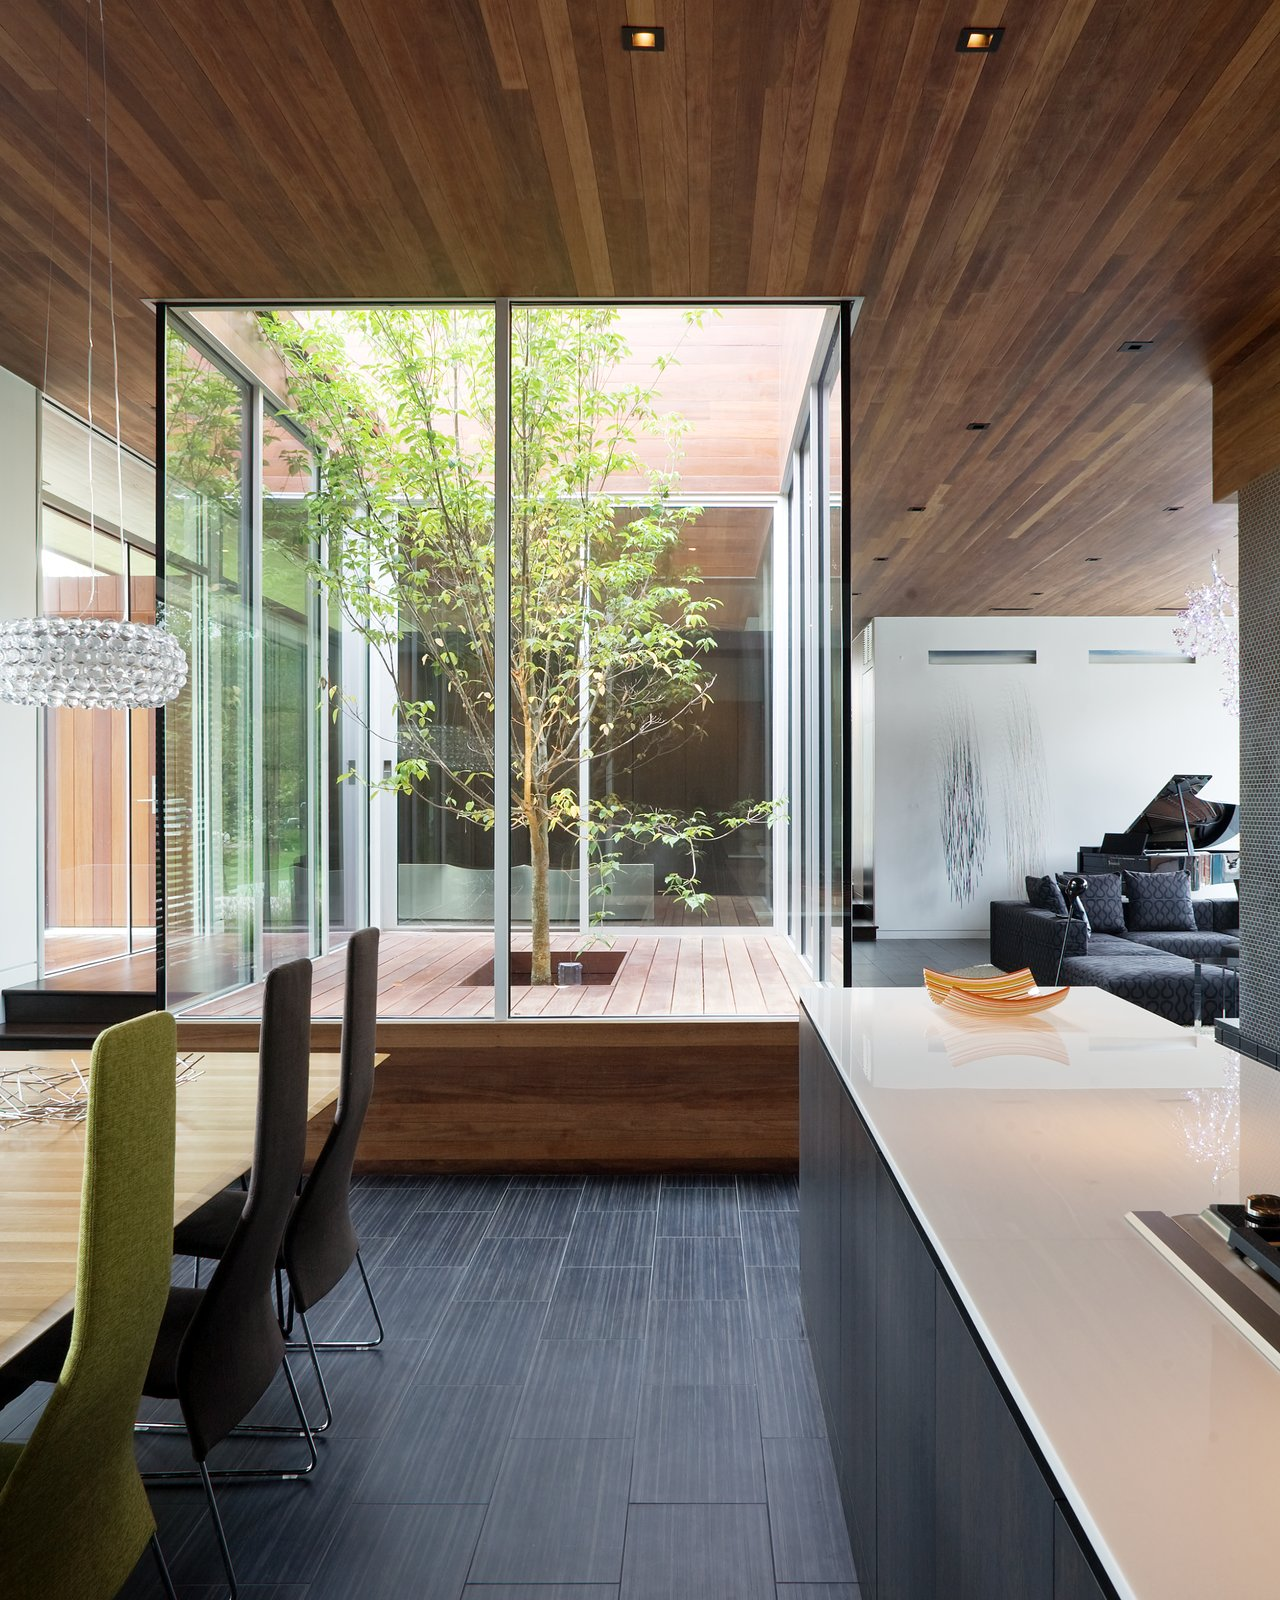 An interior glass courtyard anchors the central living areas—the dining room, foyer, living room, and kitchen all circulate a living tree. This was installed for natural light and to reinforce a connection between the indoors and outdoors.  Photo 3 of 10 in A Bold Home Creatively Combines Curves and Modern Lines